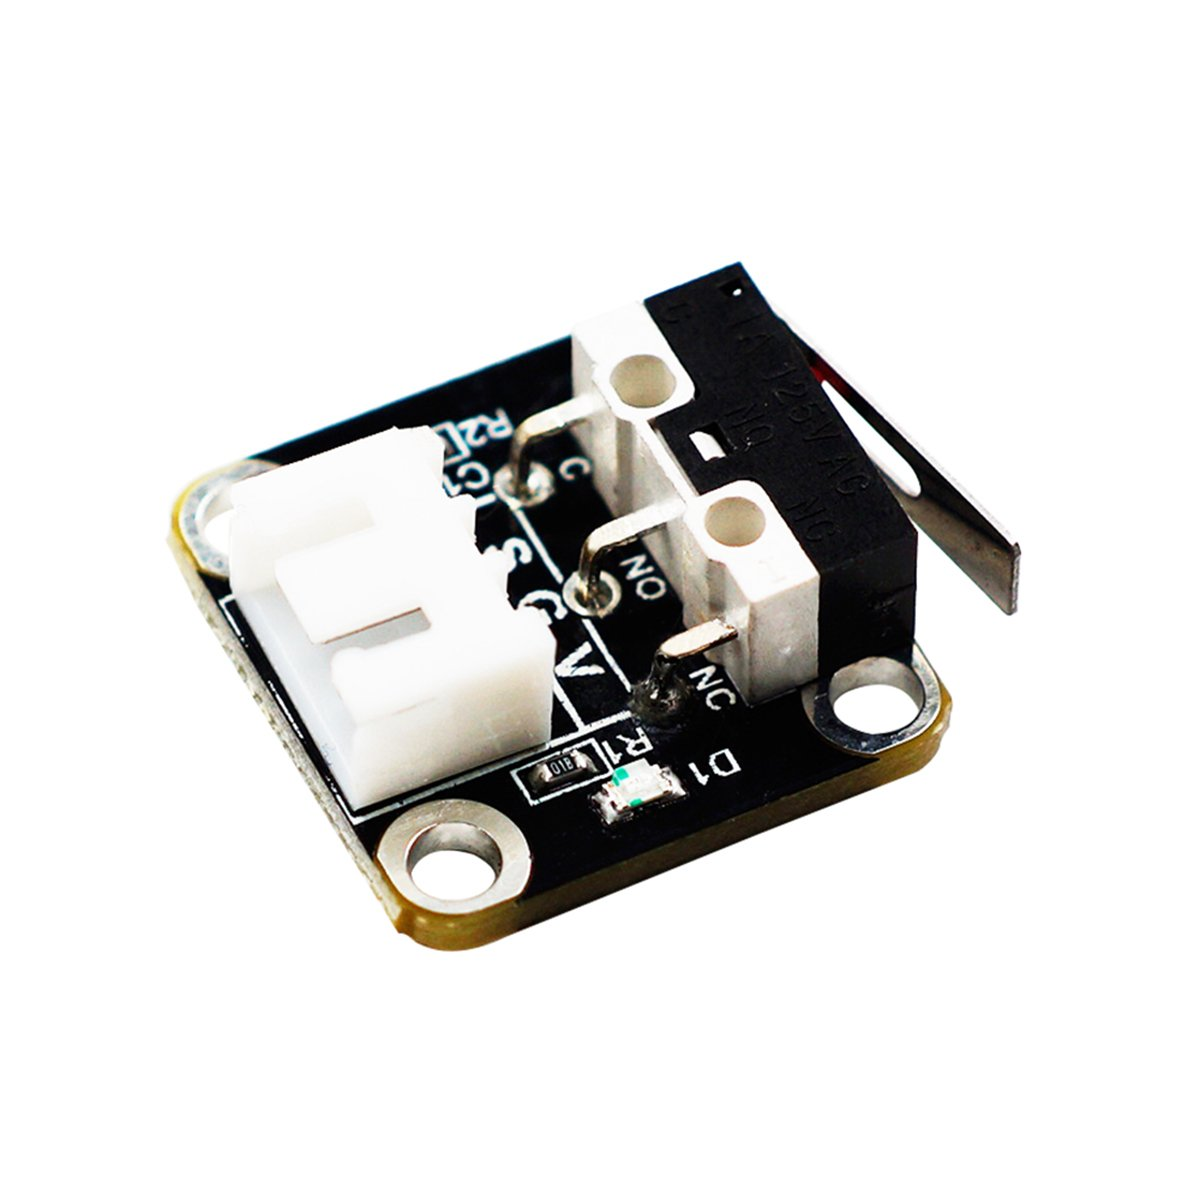 UKCOCO 3 Pack of 3D Printer CR-10 Endstops Limit Switches with Cables:  Amazon.com: Industrial & Scientific